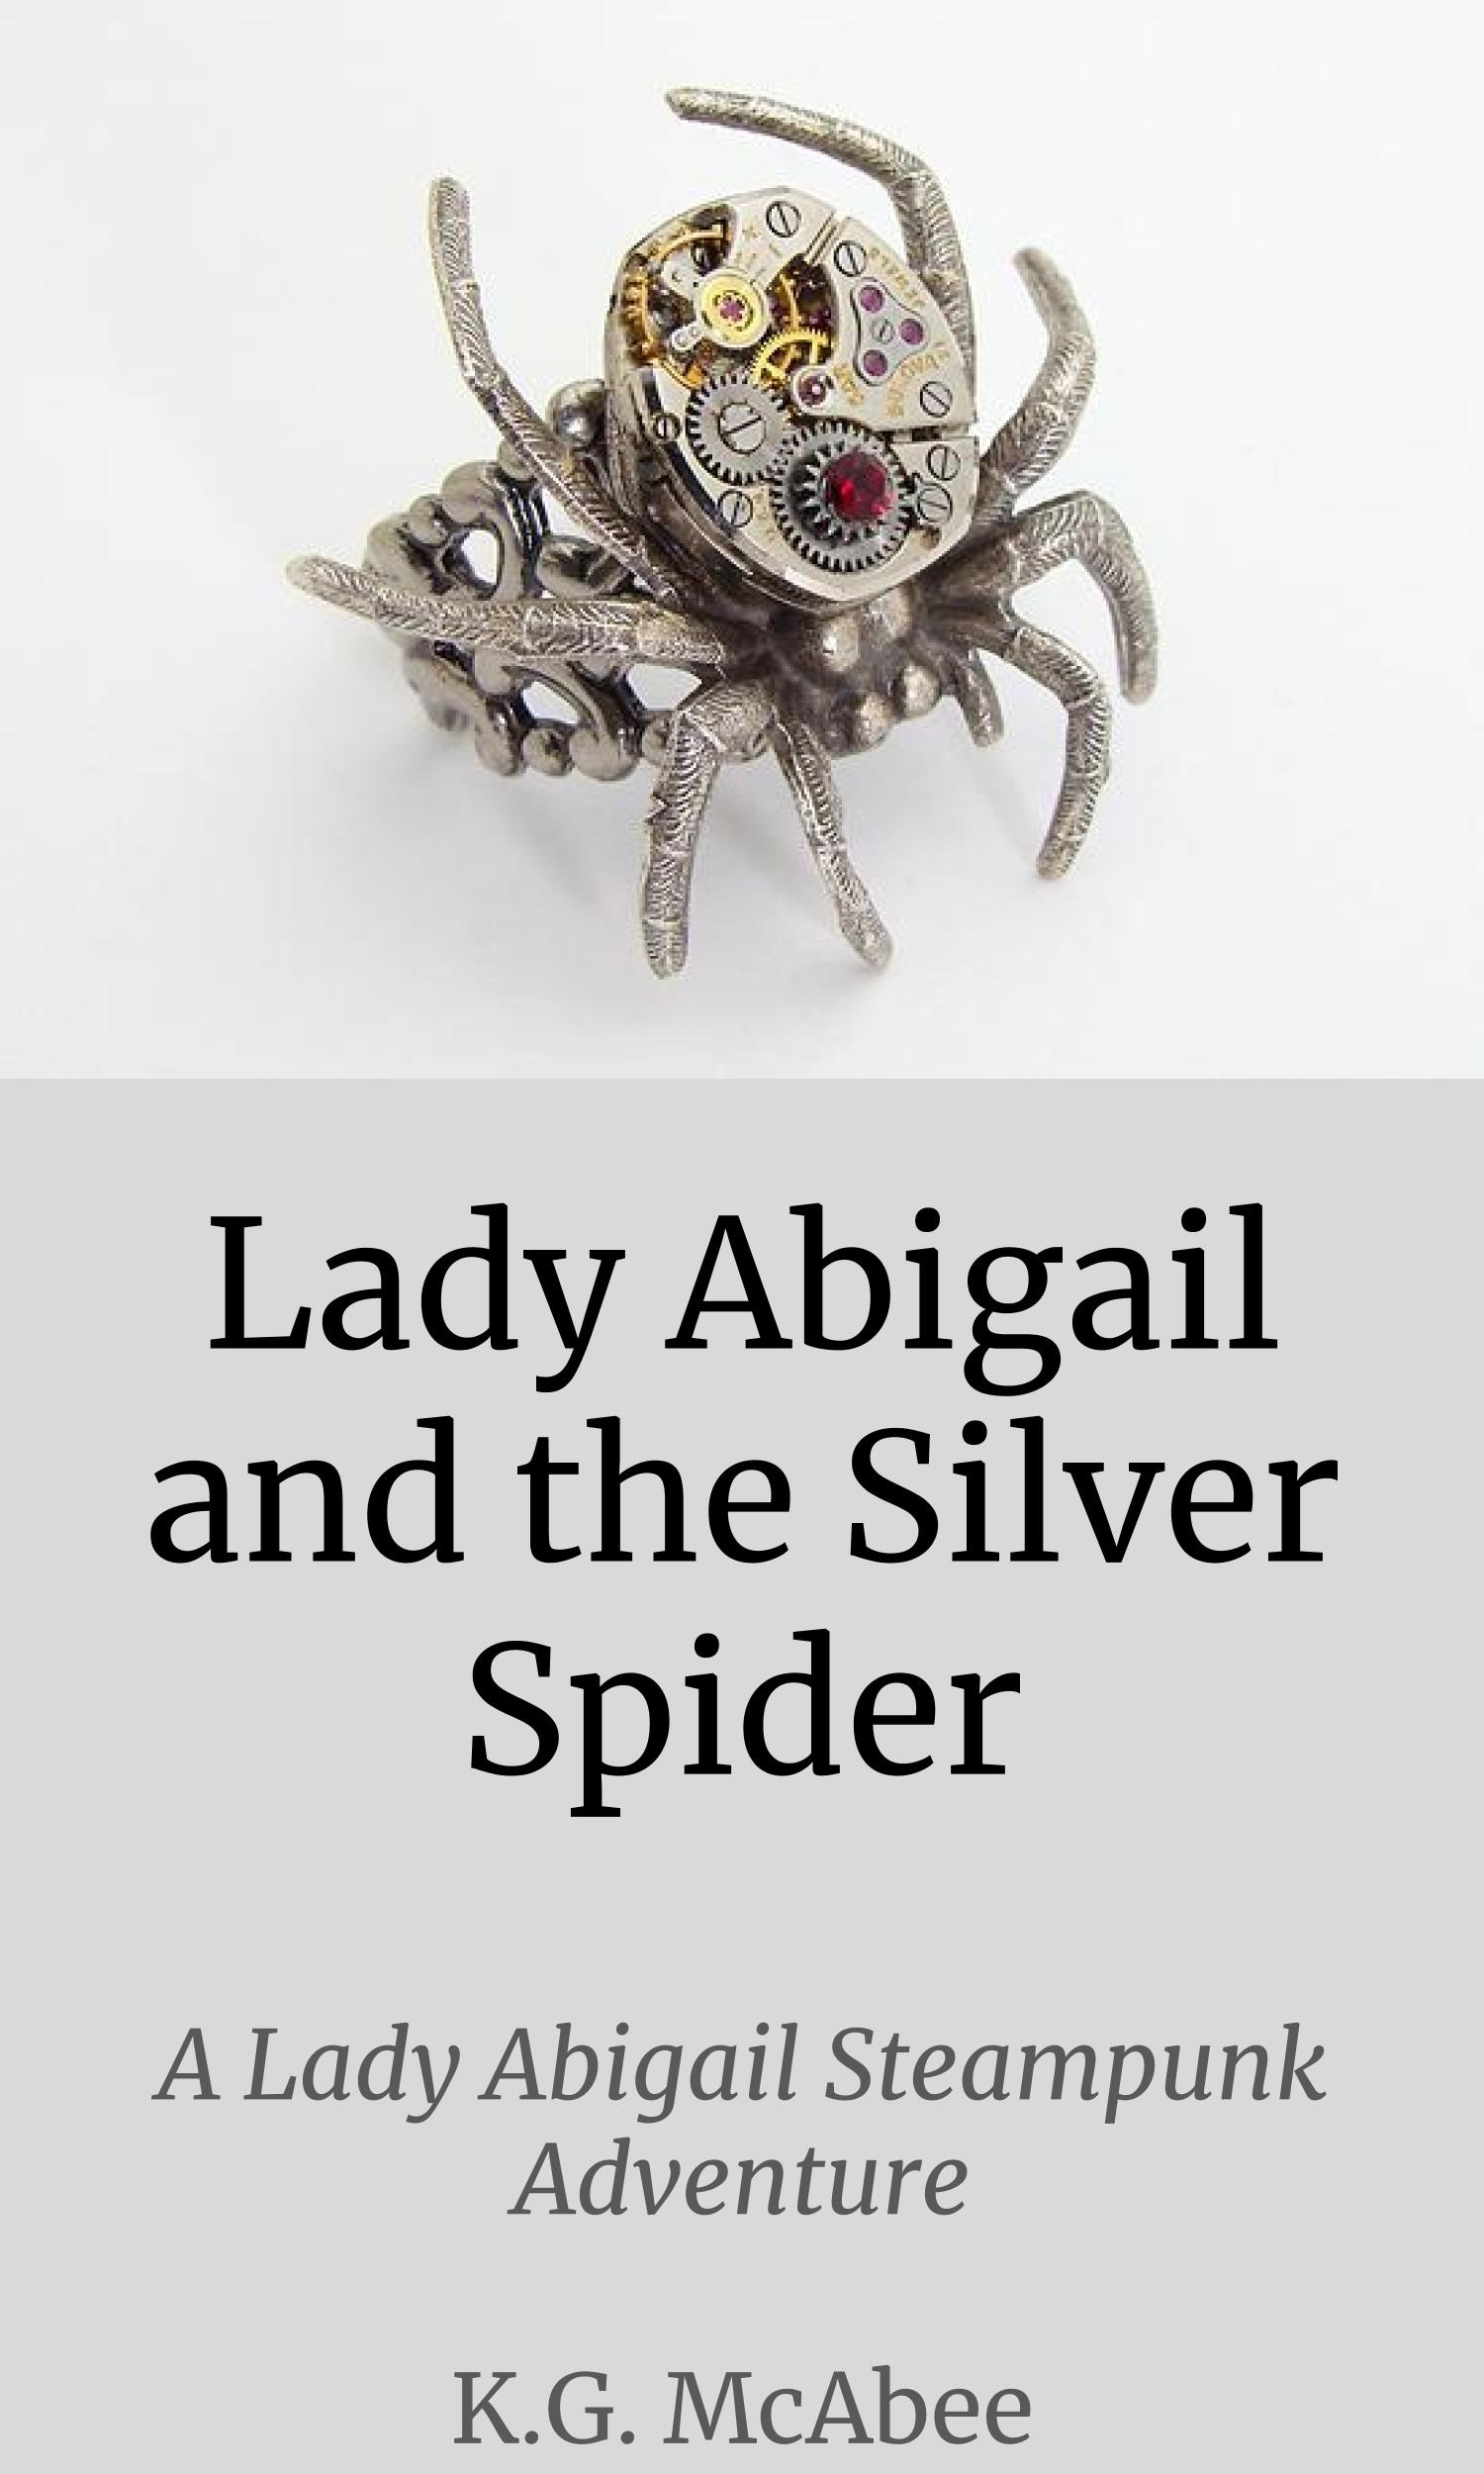 Lady Abigail and the Silver Spider image